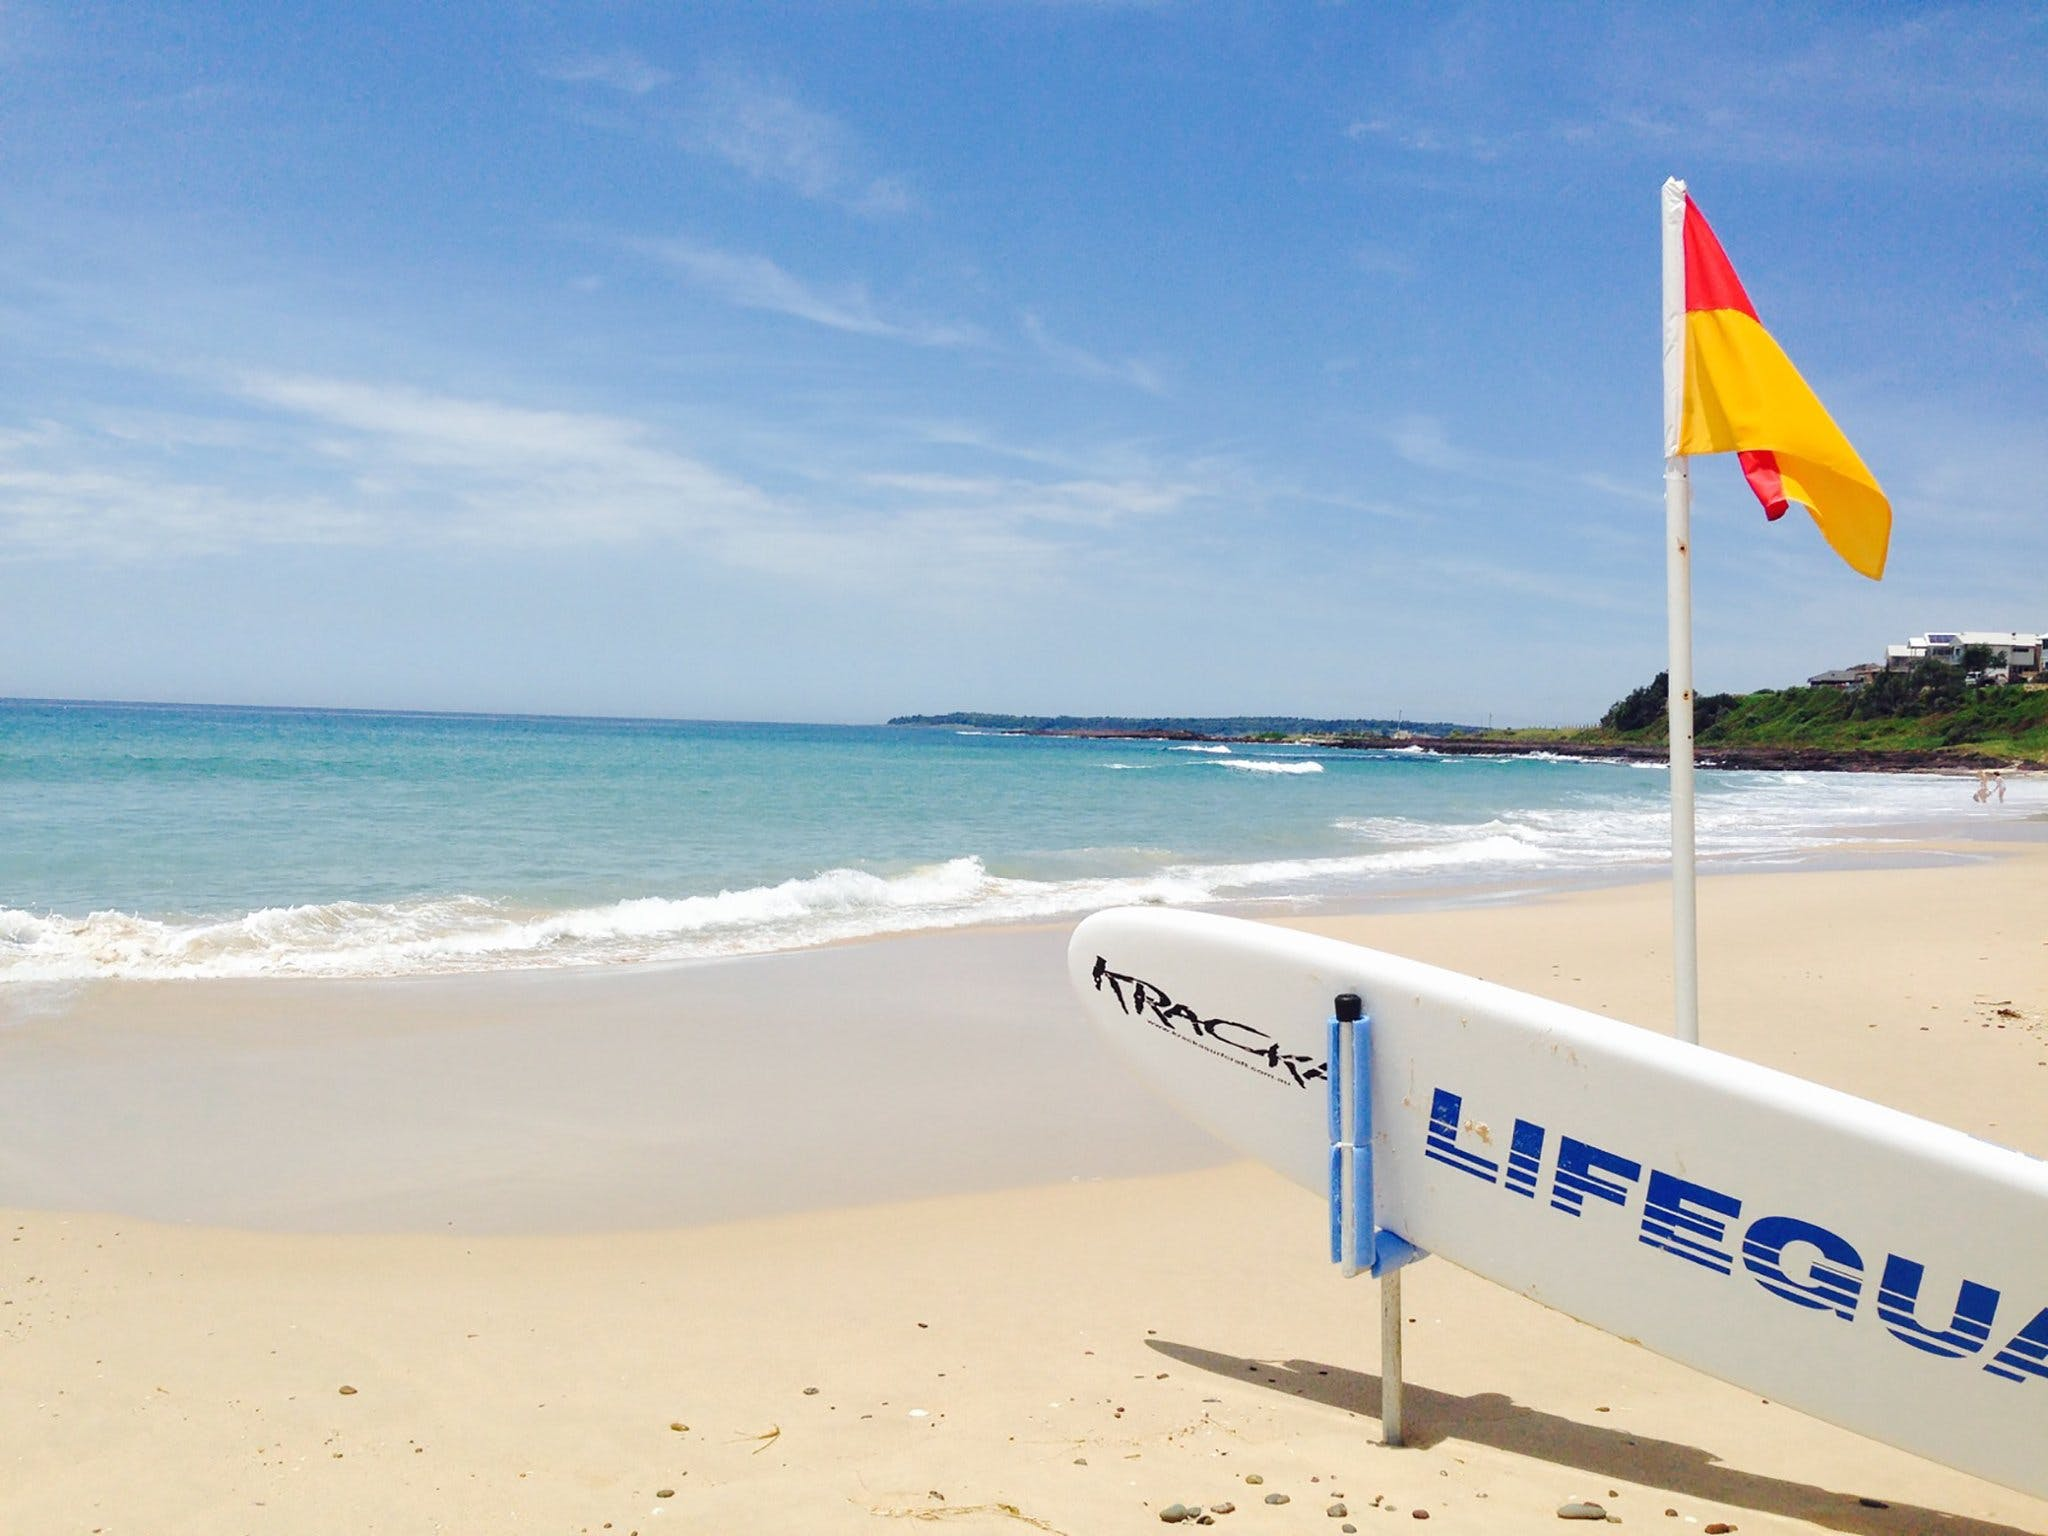 Shellharbour North Beach - Find Attractions